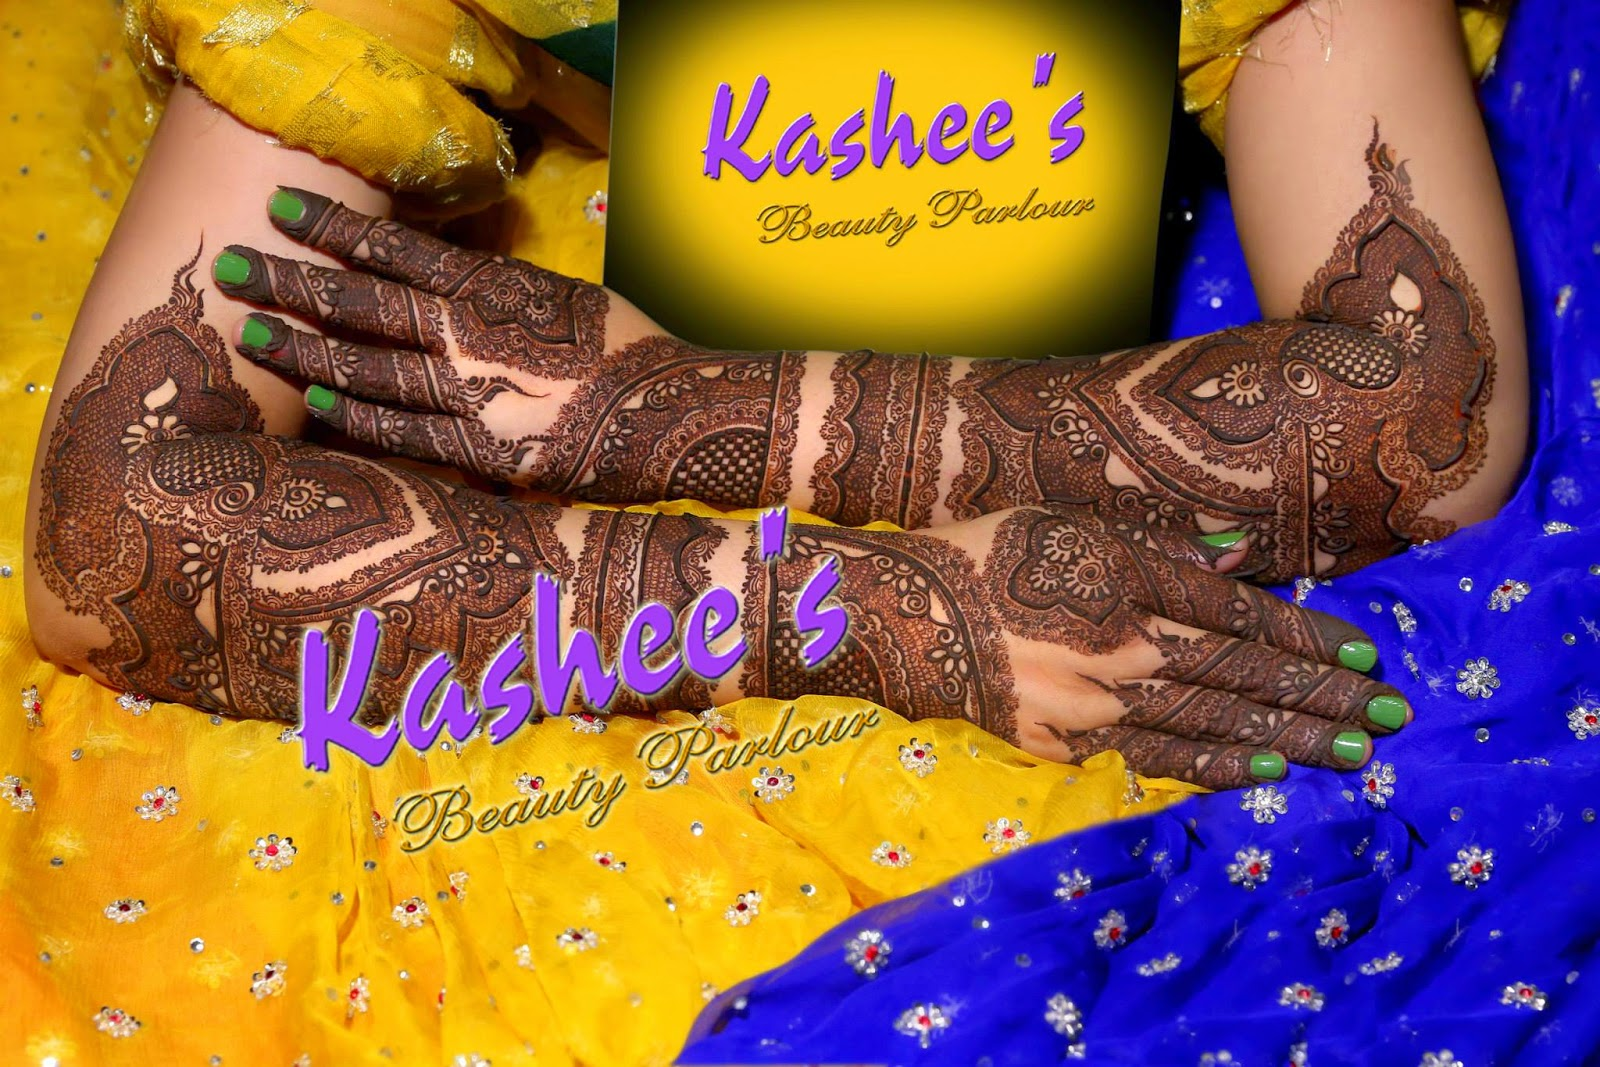 Chand raat mehndi henna designs 2014 - Kashee S Beautiful Henna Designs For Full Hand Amp Bazo